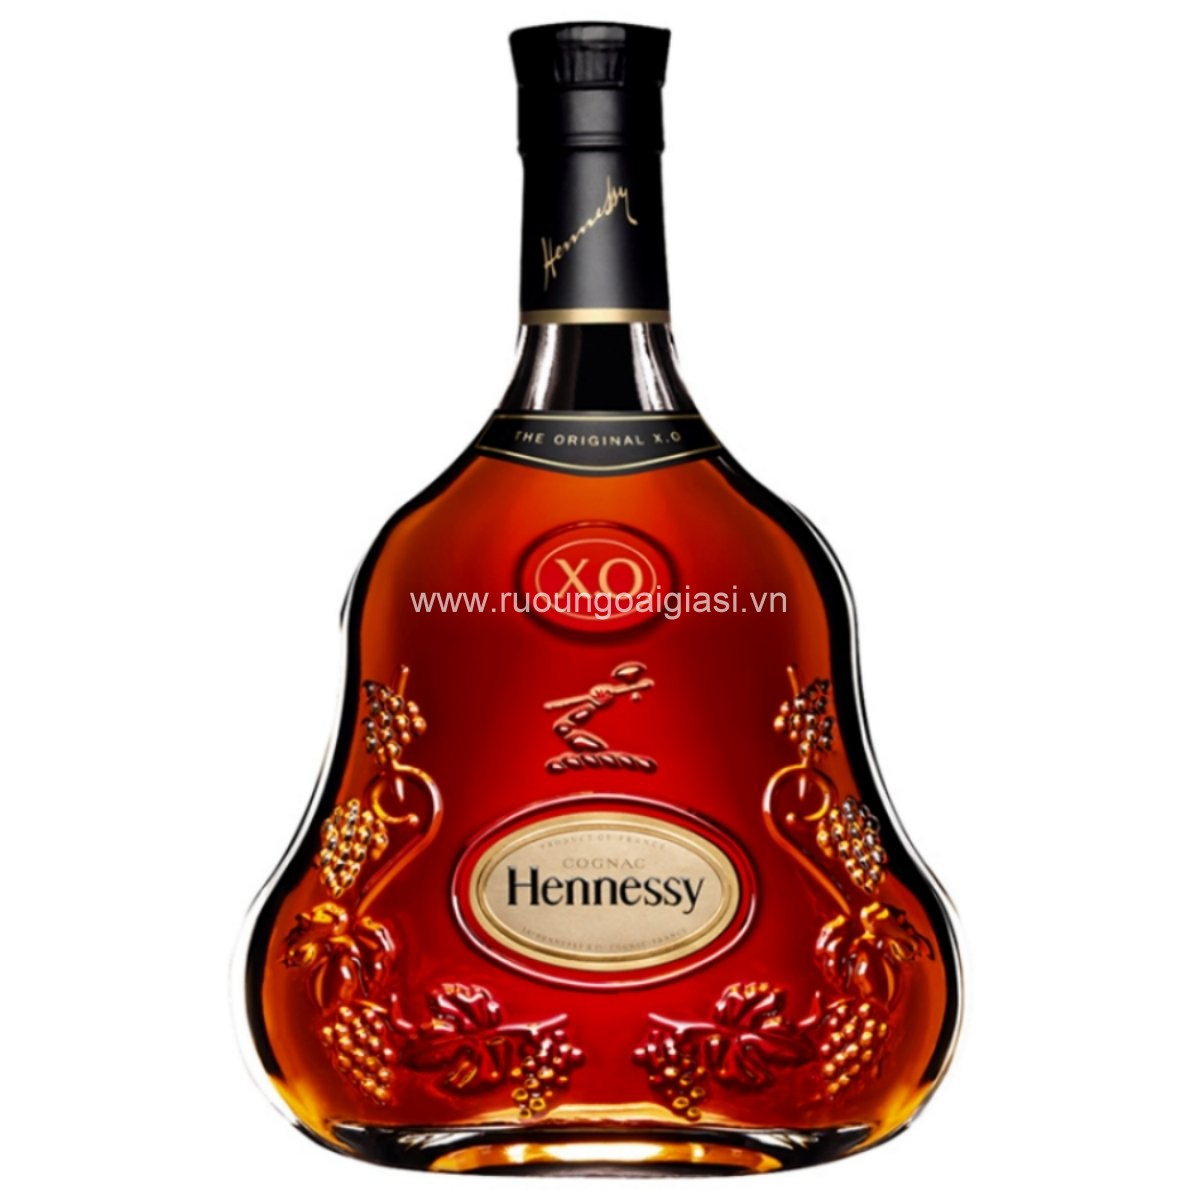 hennessy-XO-ruoungoaigiasi.vn